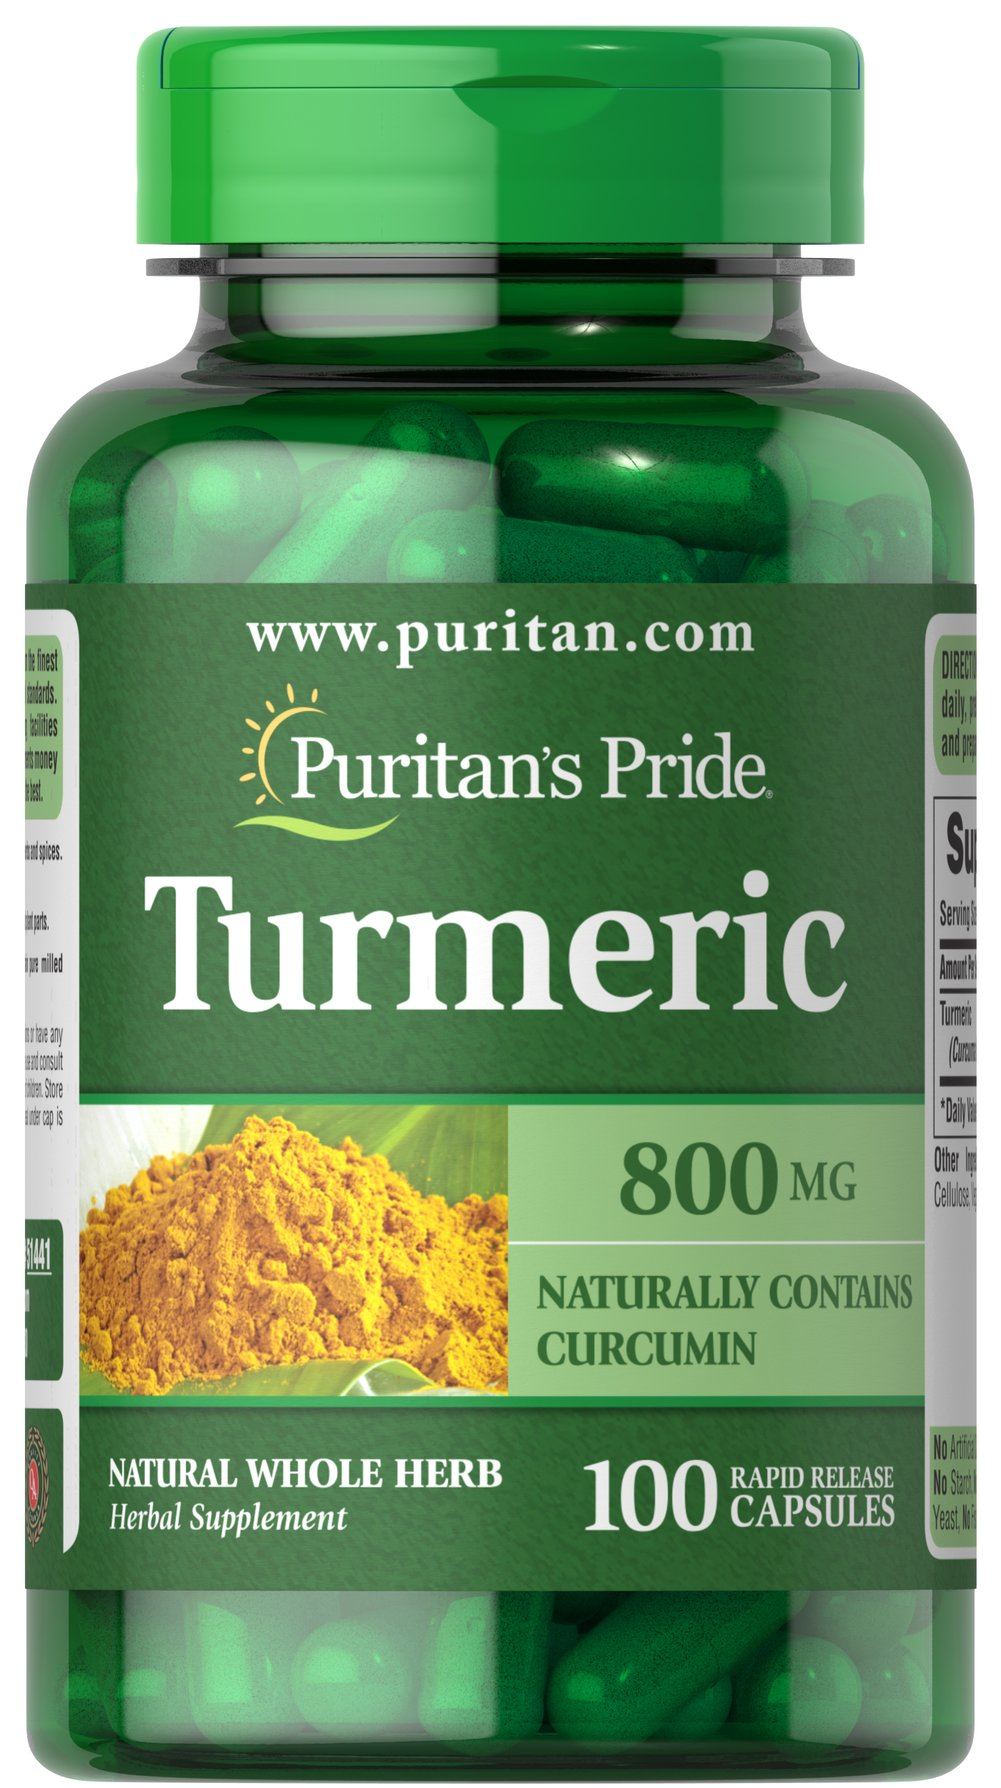 Turmeric 800 mg <p>Turmeric, a common spice used in curry dishes, has become a popular herbal supplement due to its potential antioxidant properties, which may contribute to brain health.** Available in 800 mg capsules, adults can take one capsule two times daily with meals. Capsules may be opened and prepared as a tea.</p> 100 Capsules 800 mg $10.49